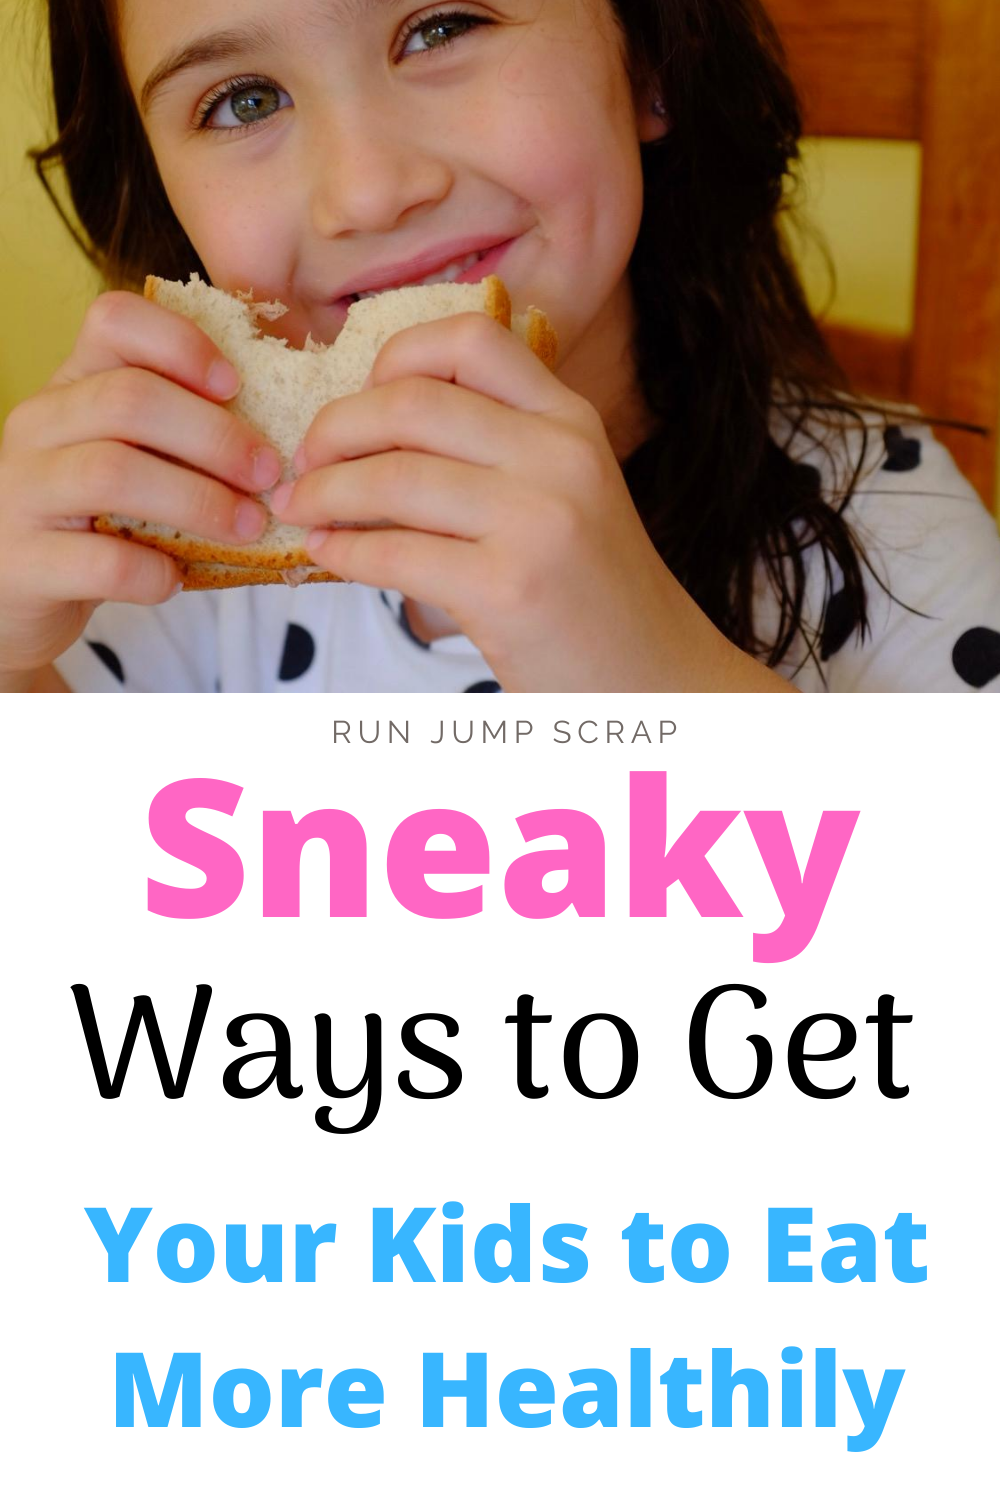 sneaky ways to get your kids to eat more healthily